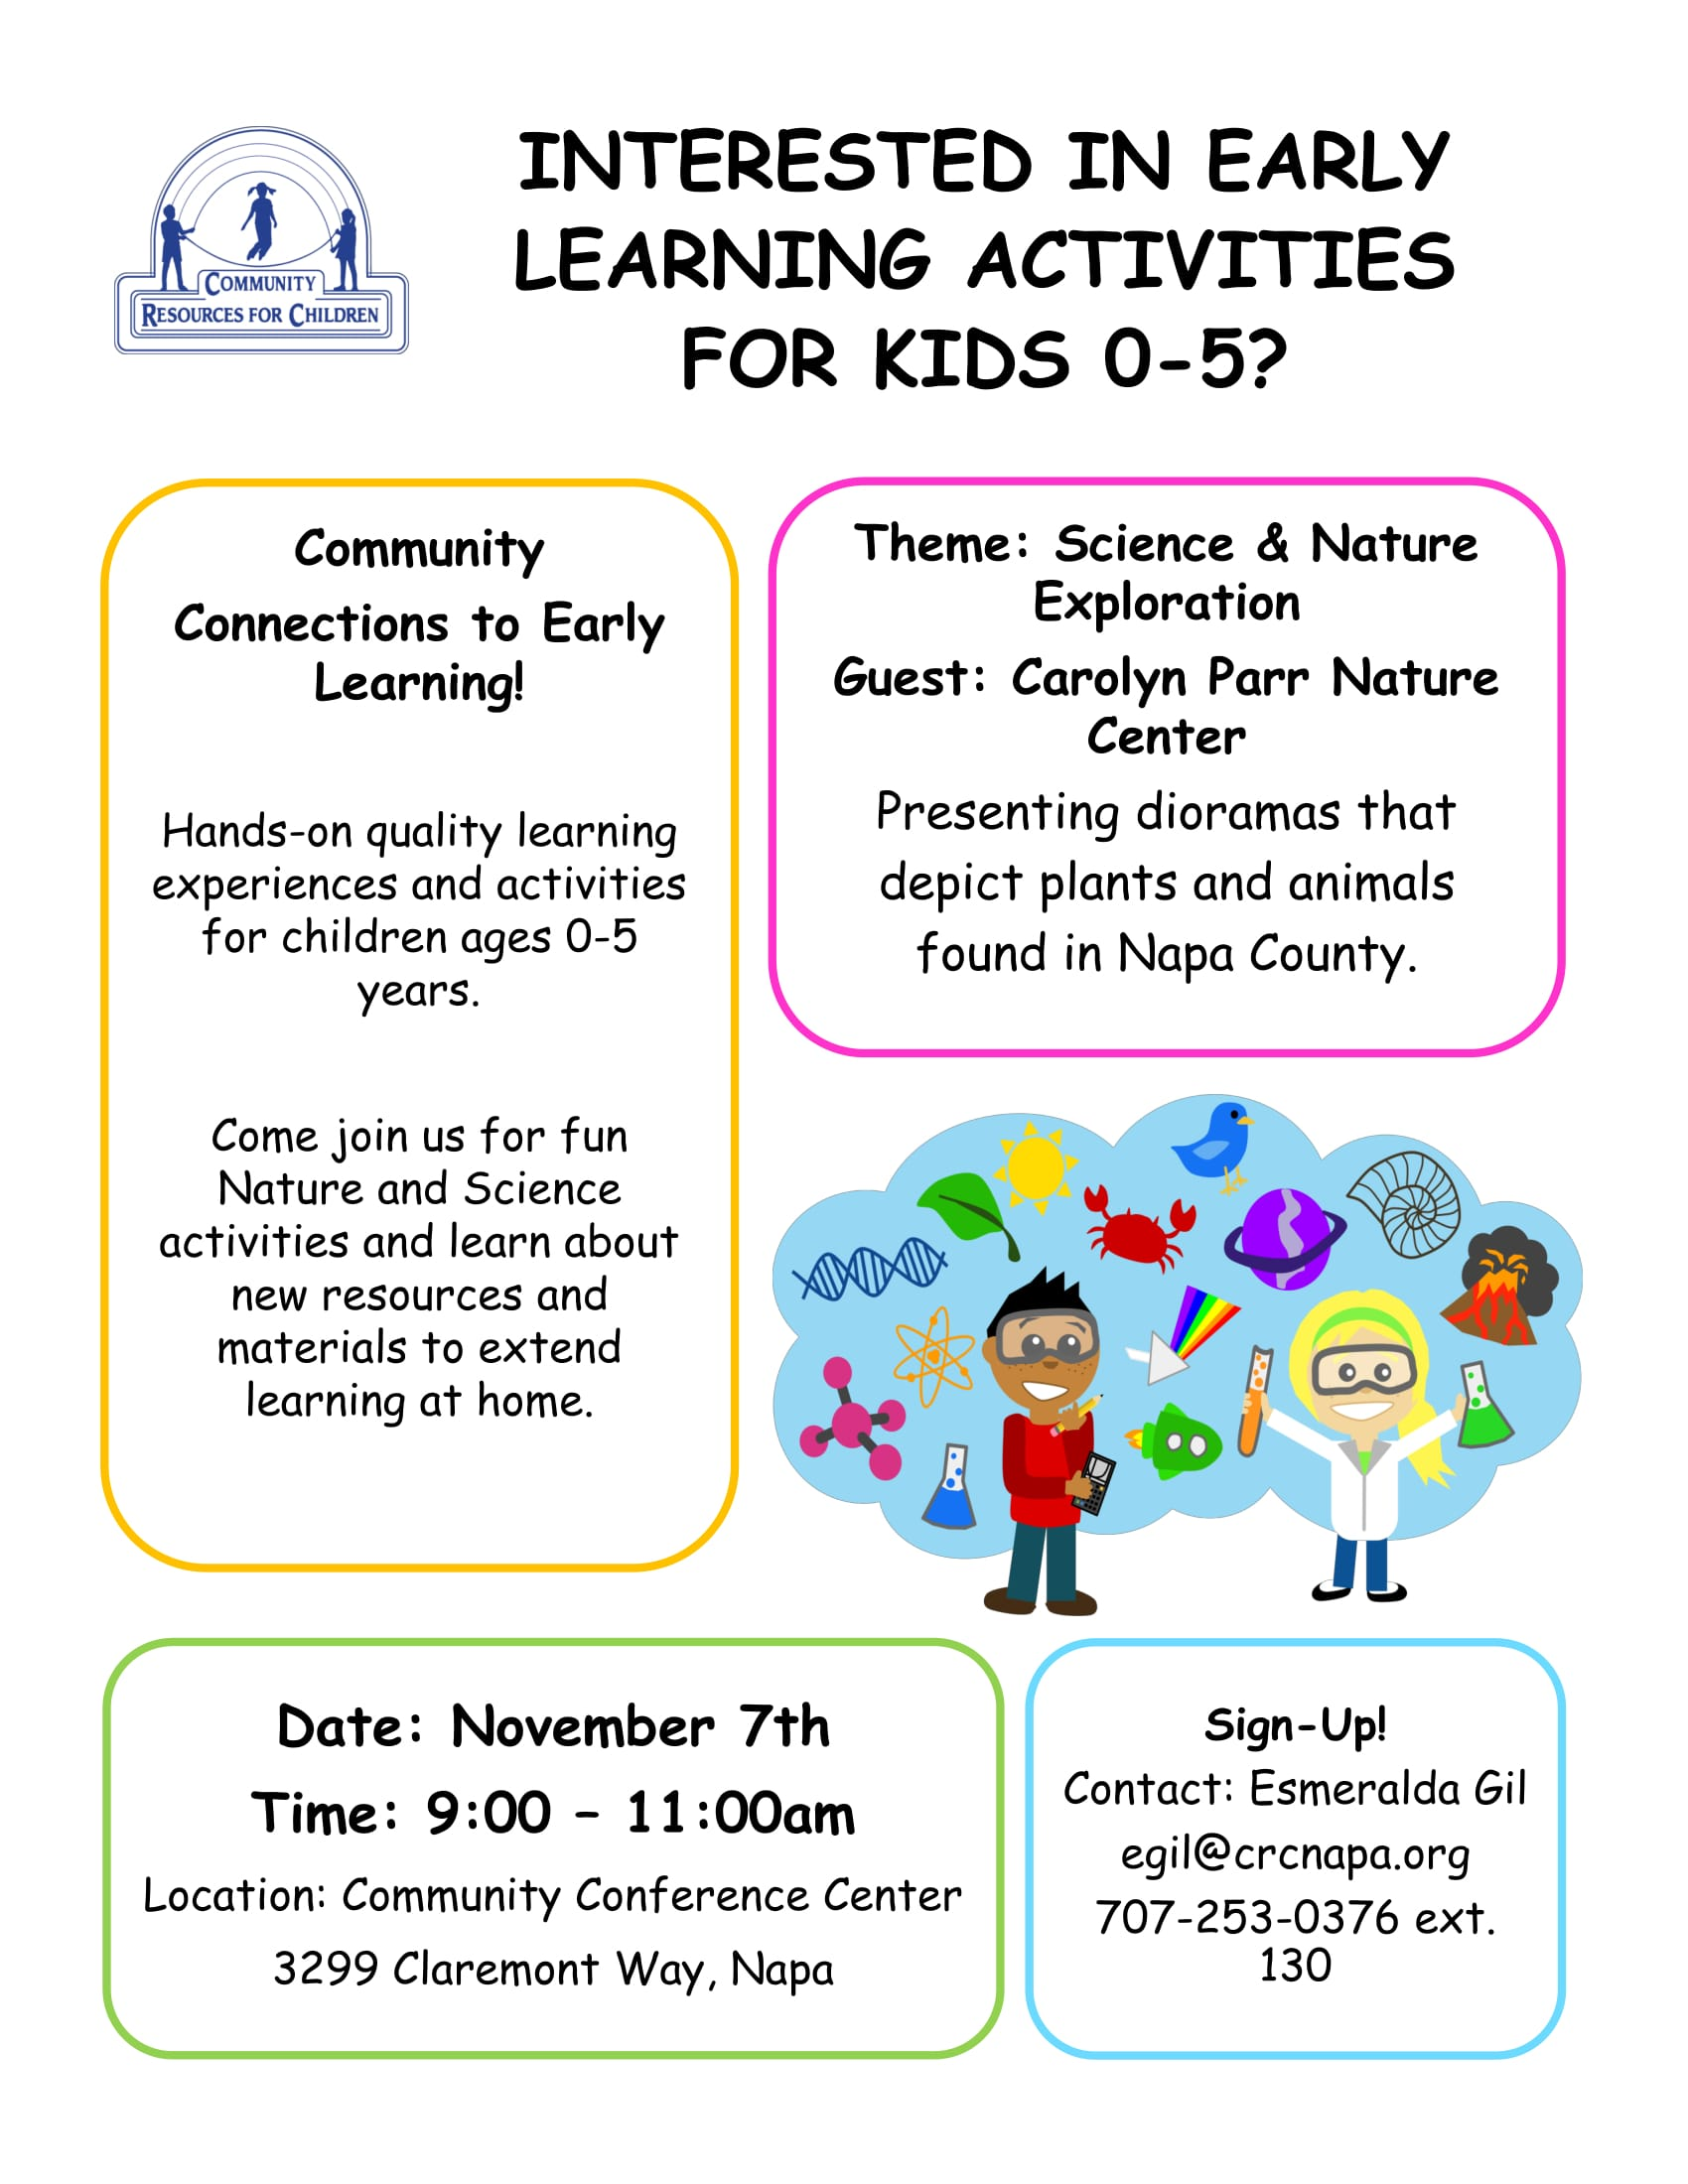 Community Connections to Early Learning